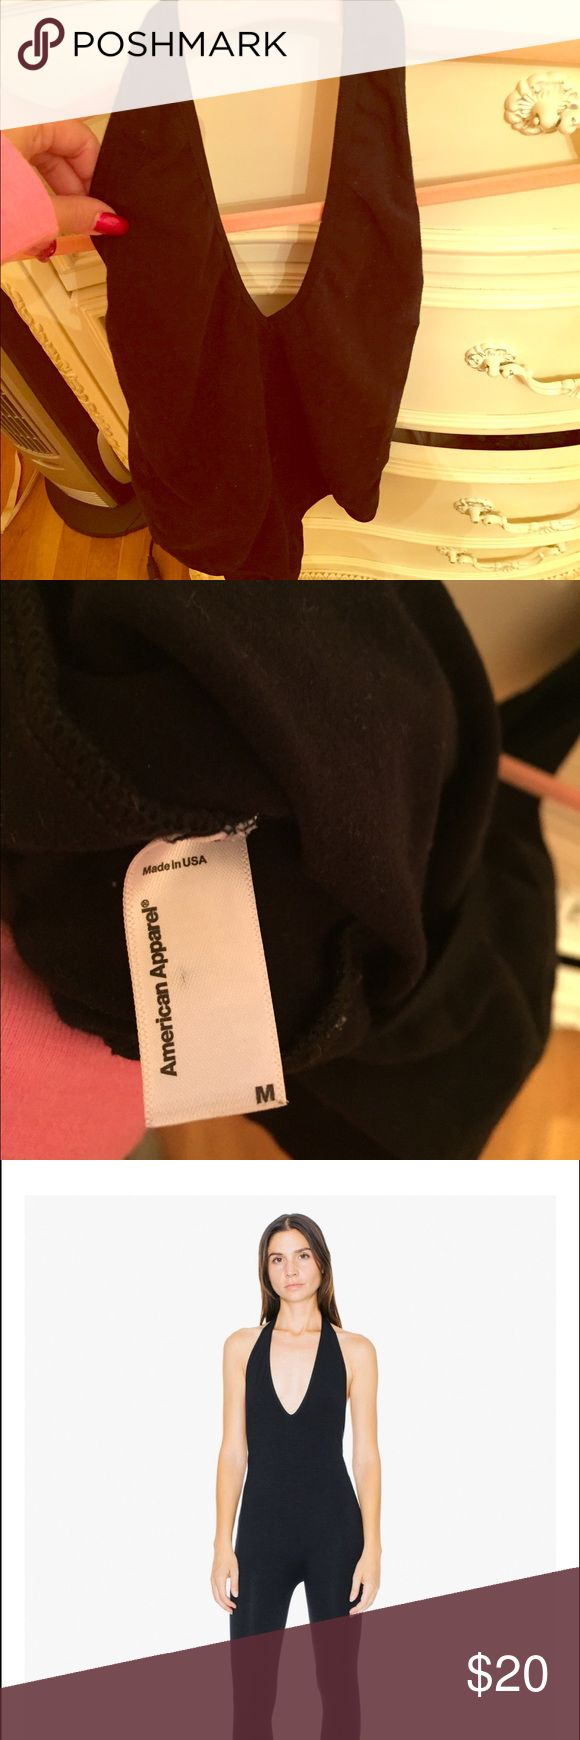 American apparel black halter bodysuit open back American apparel black halter bodysuit open back ! Pictured in the last two pics of front and back NWOT American Apparel Tops